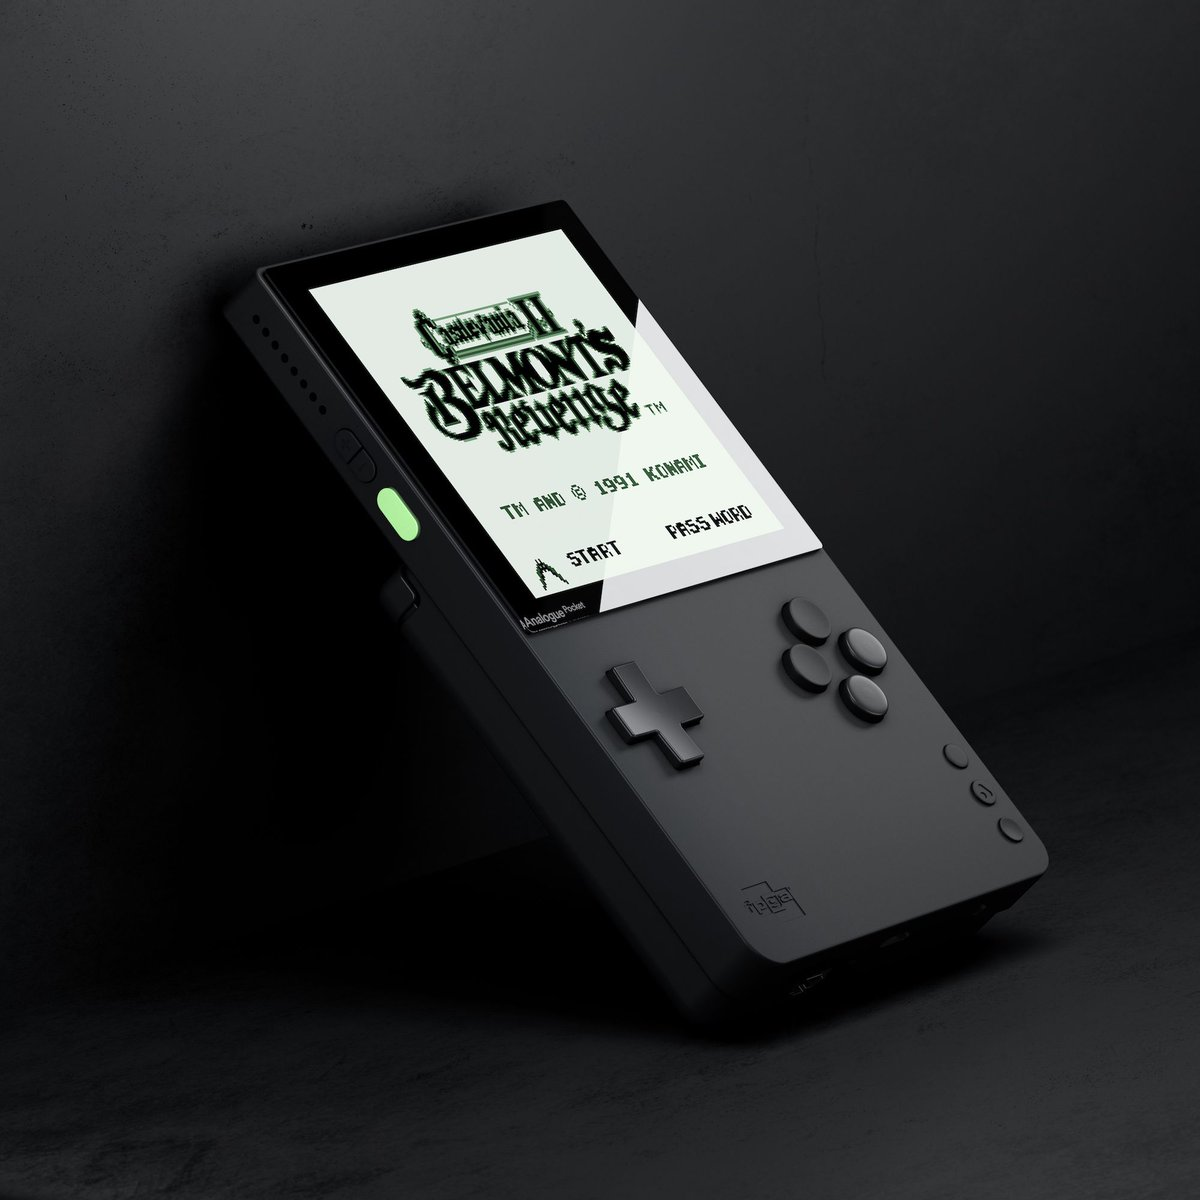 Analogue Pocket is a gorgeous, modern handheld for playing your old Game Boy games